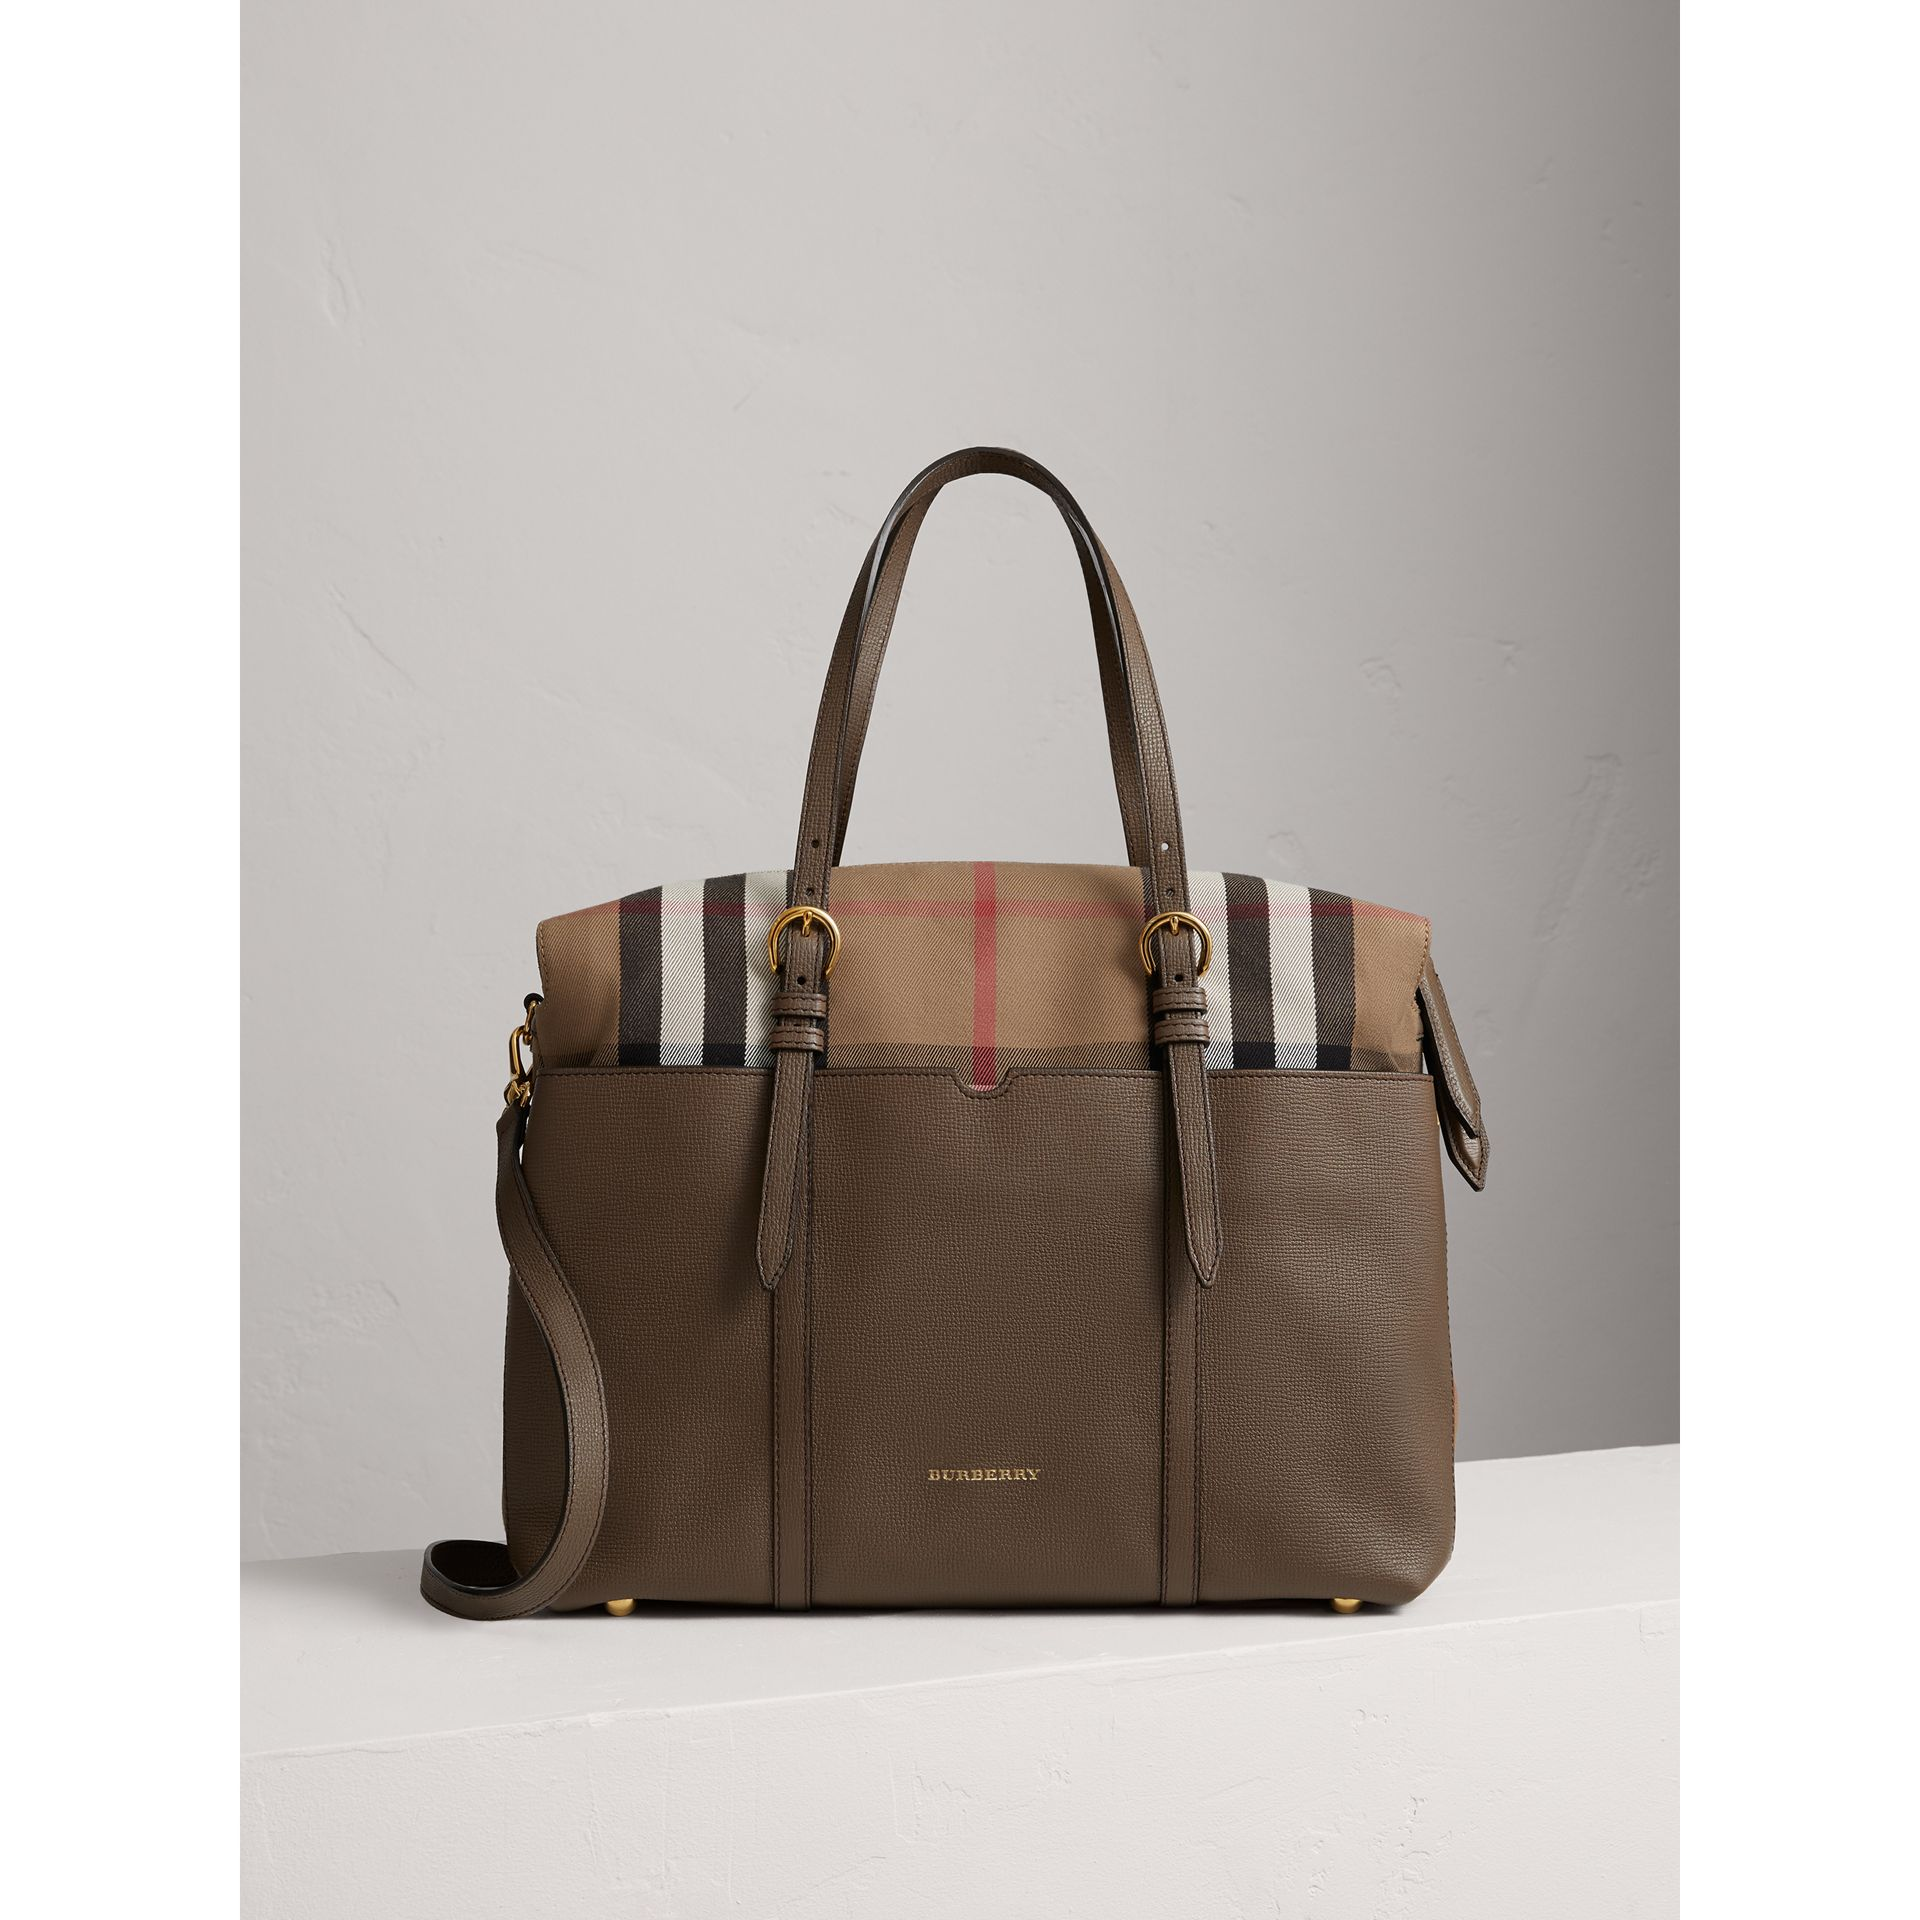 House Check and Leather Baby Changing Bag in Taupe Grey | Burberry - gallery image 1